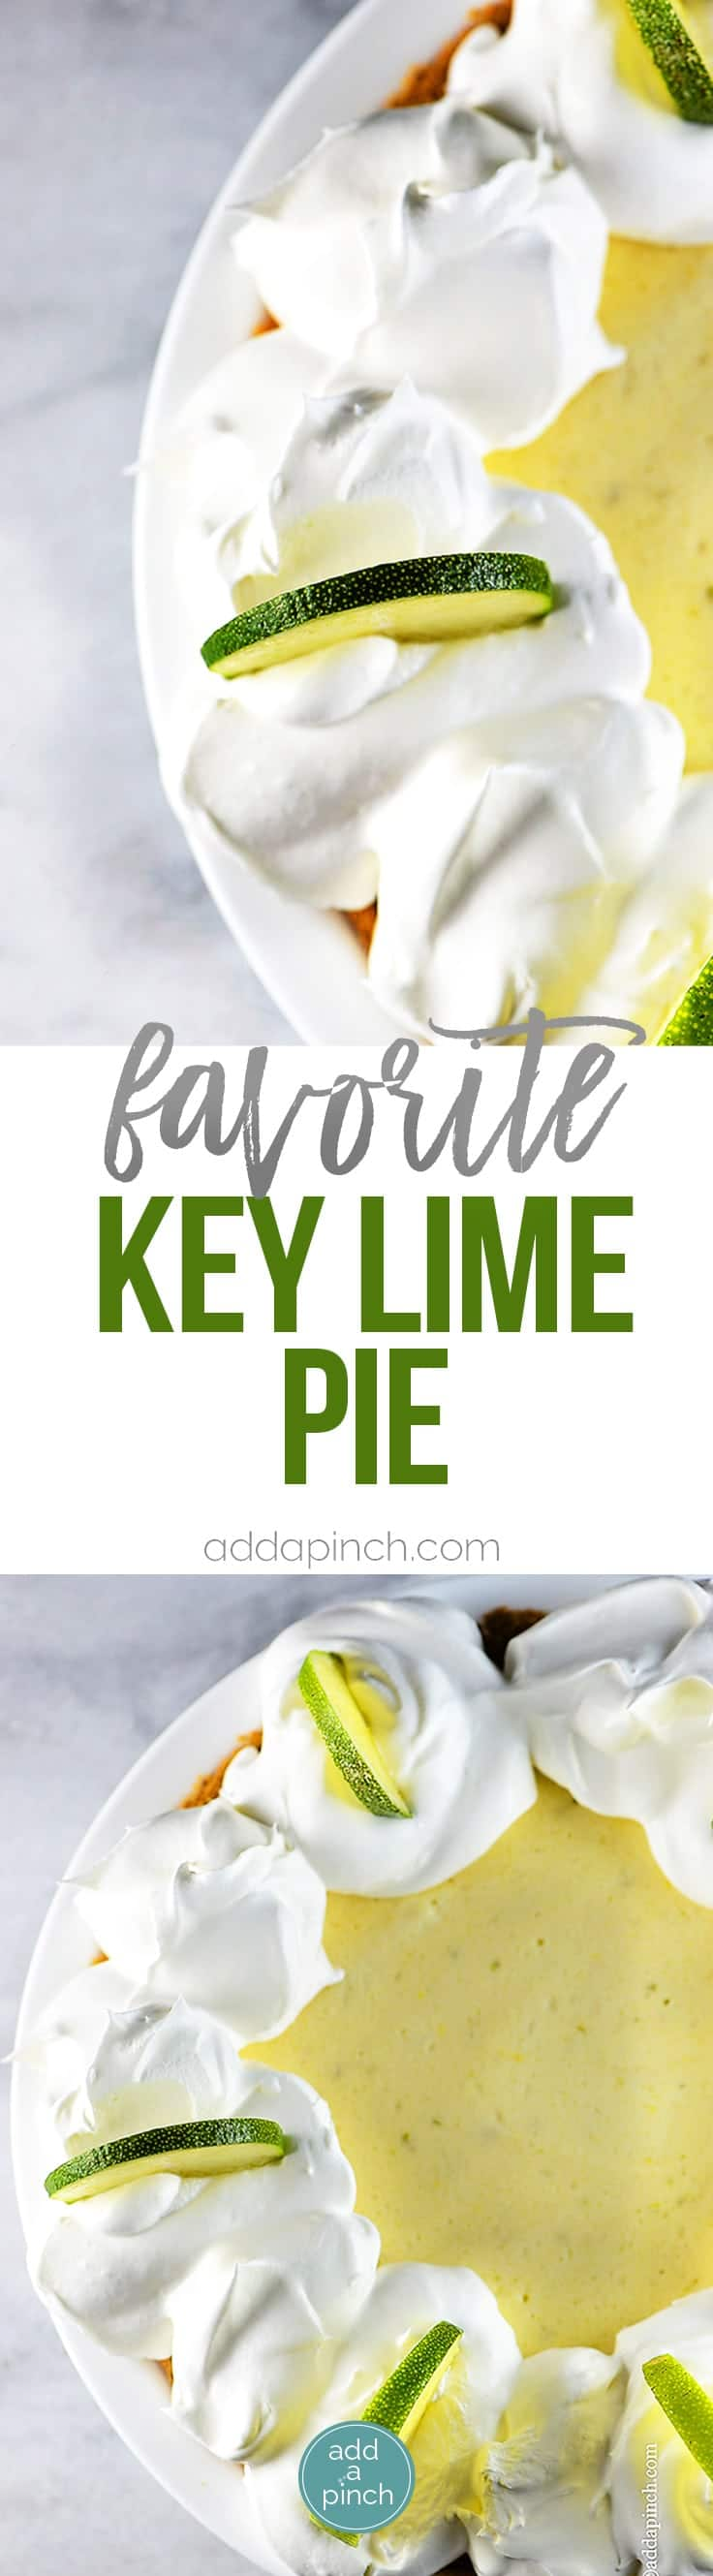 Key Lime Pie Recipe - Key Lime Pie makes a classic, refreshing dessert recipe. Made of simple ingredients, this updated key lime pie recipe comes together quickly and chills to a light and airy consistency for an elegant dessert. // addapinch.com